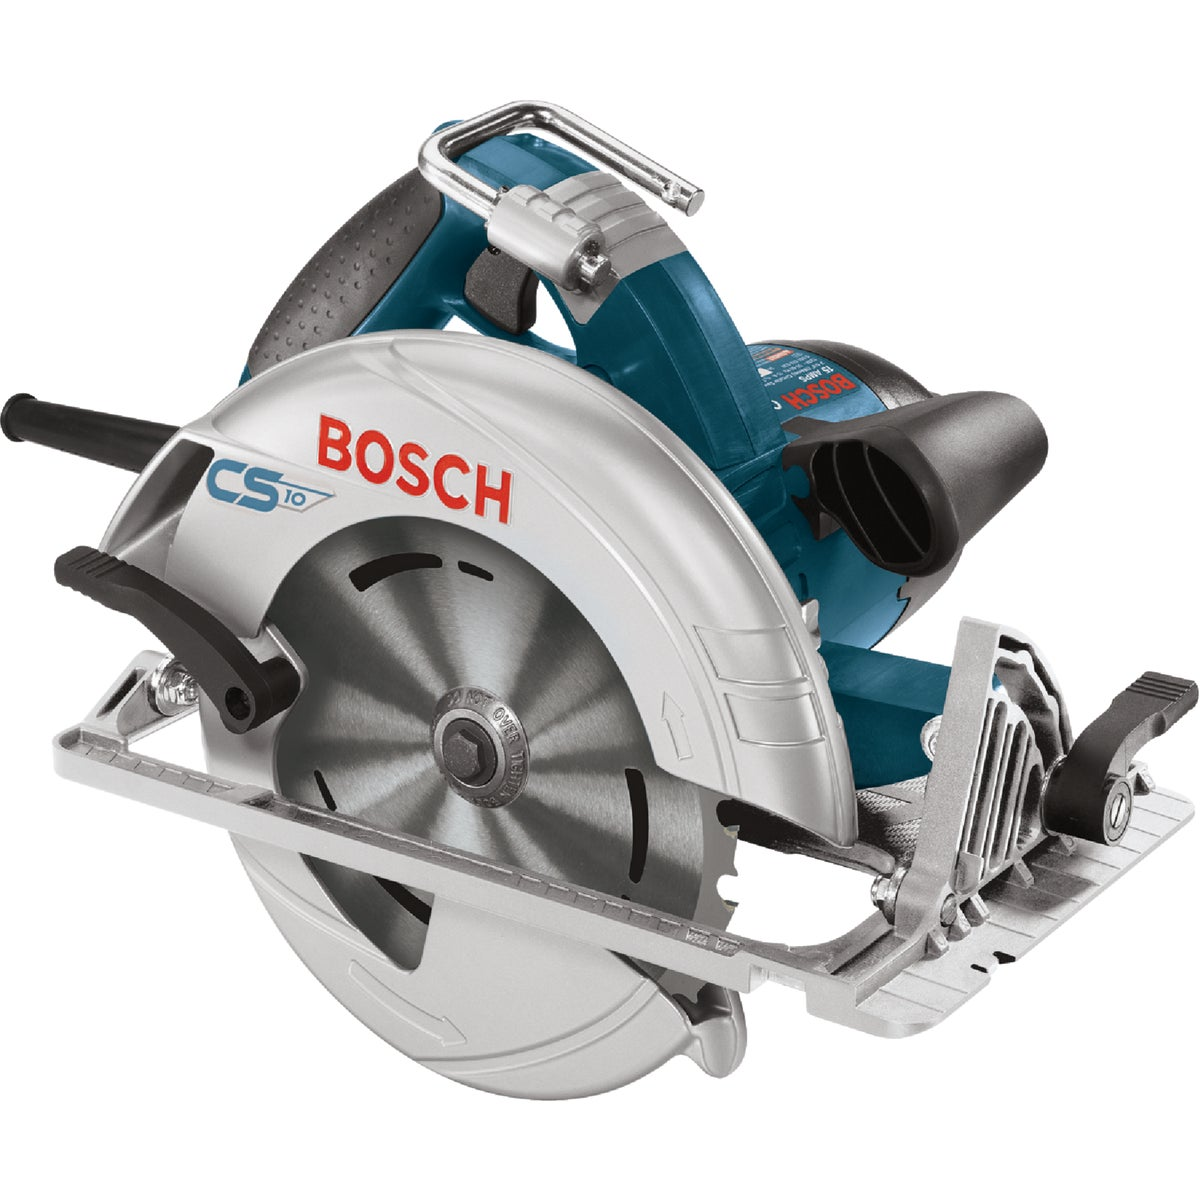 "7-1/4"" 15A CIRCULAR SAW - CS10 by Robt Bosch Tool Corp"